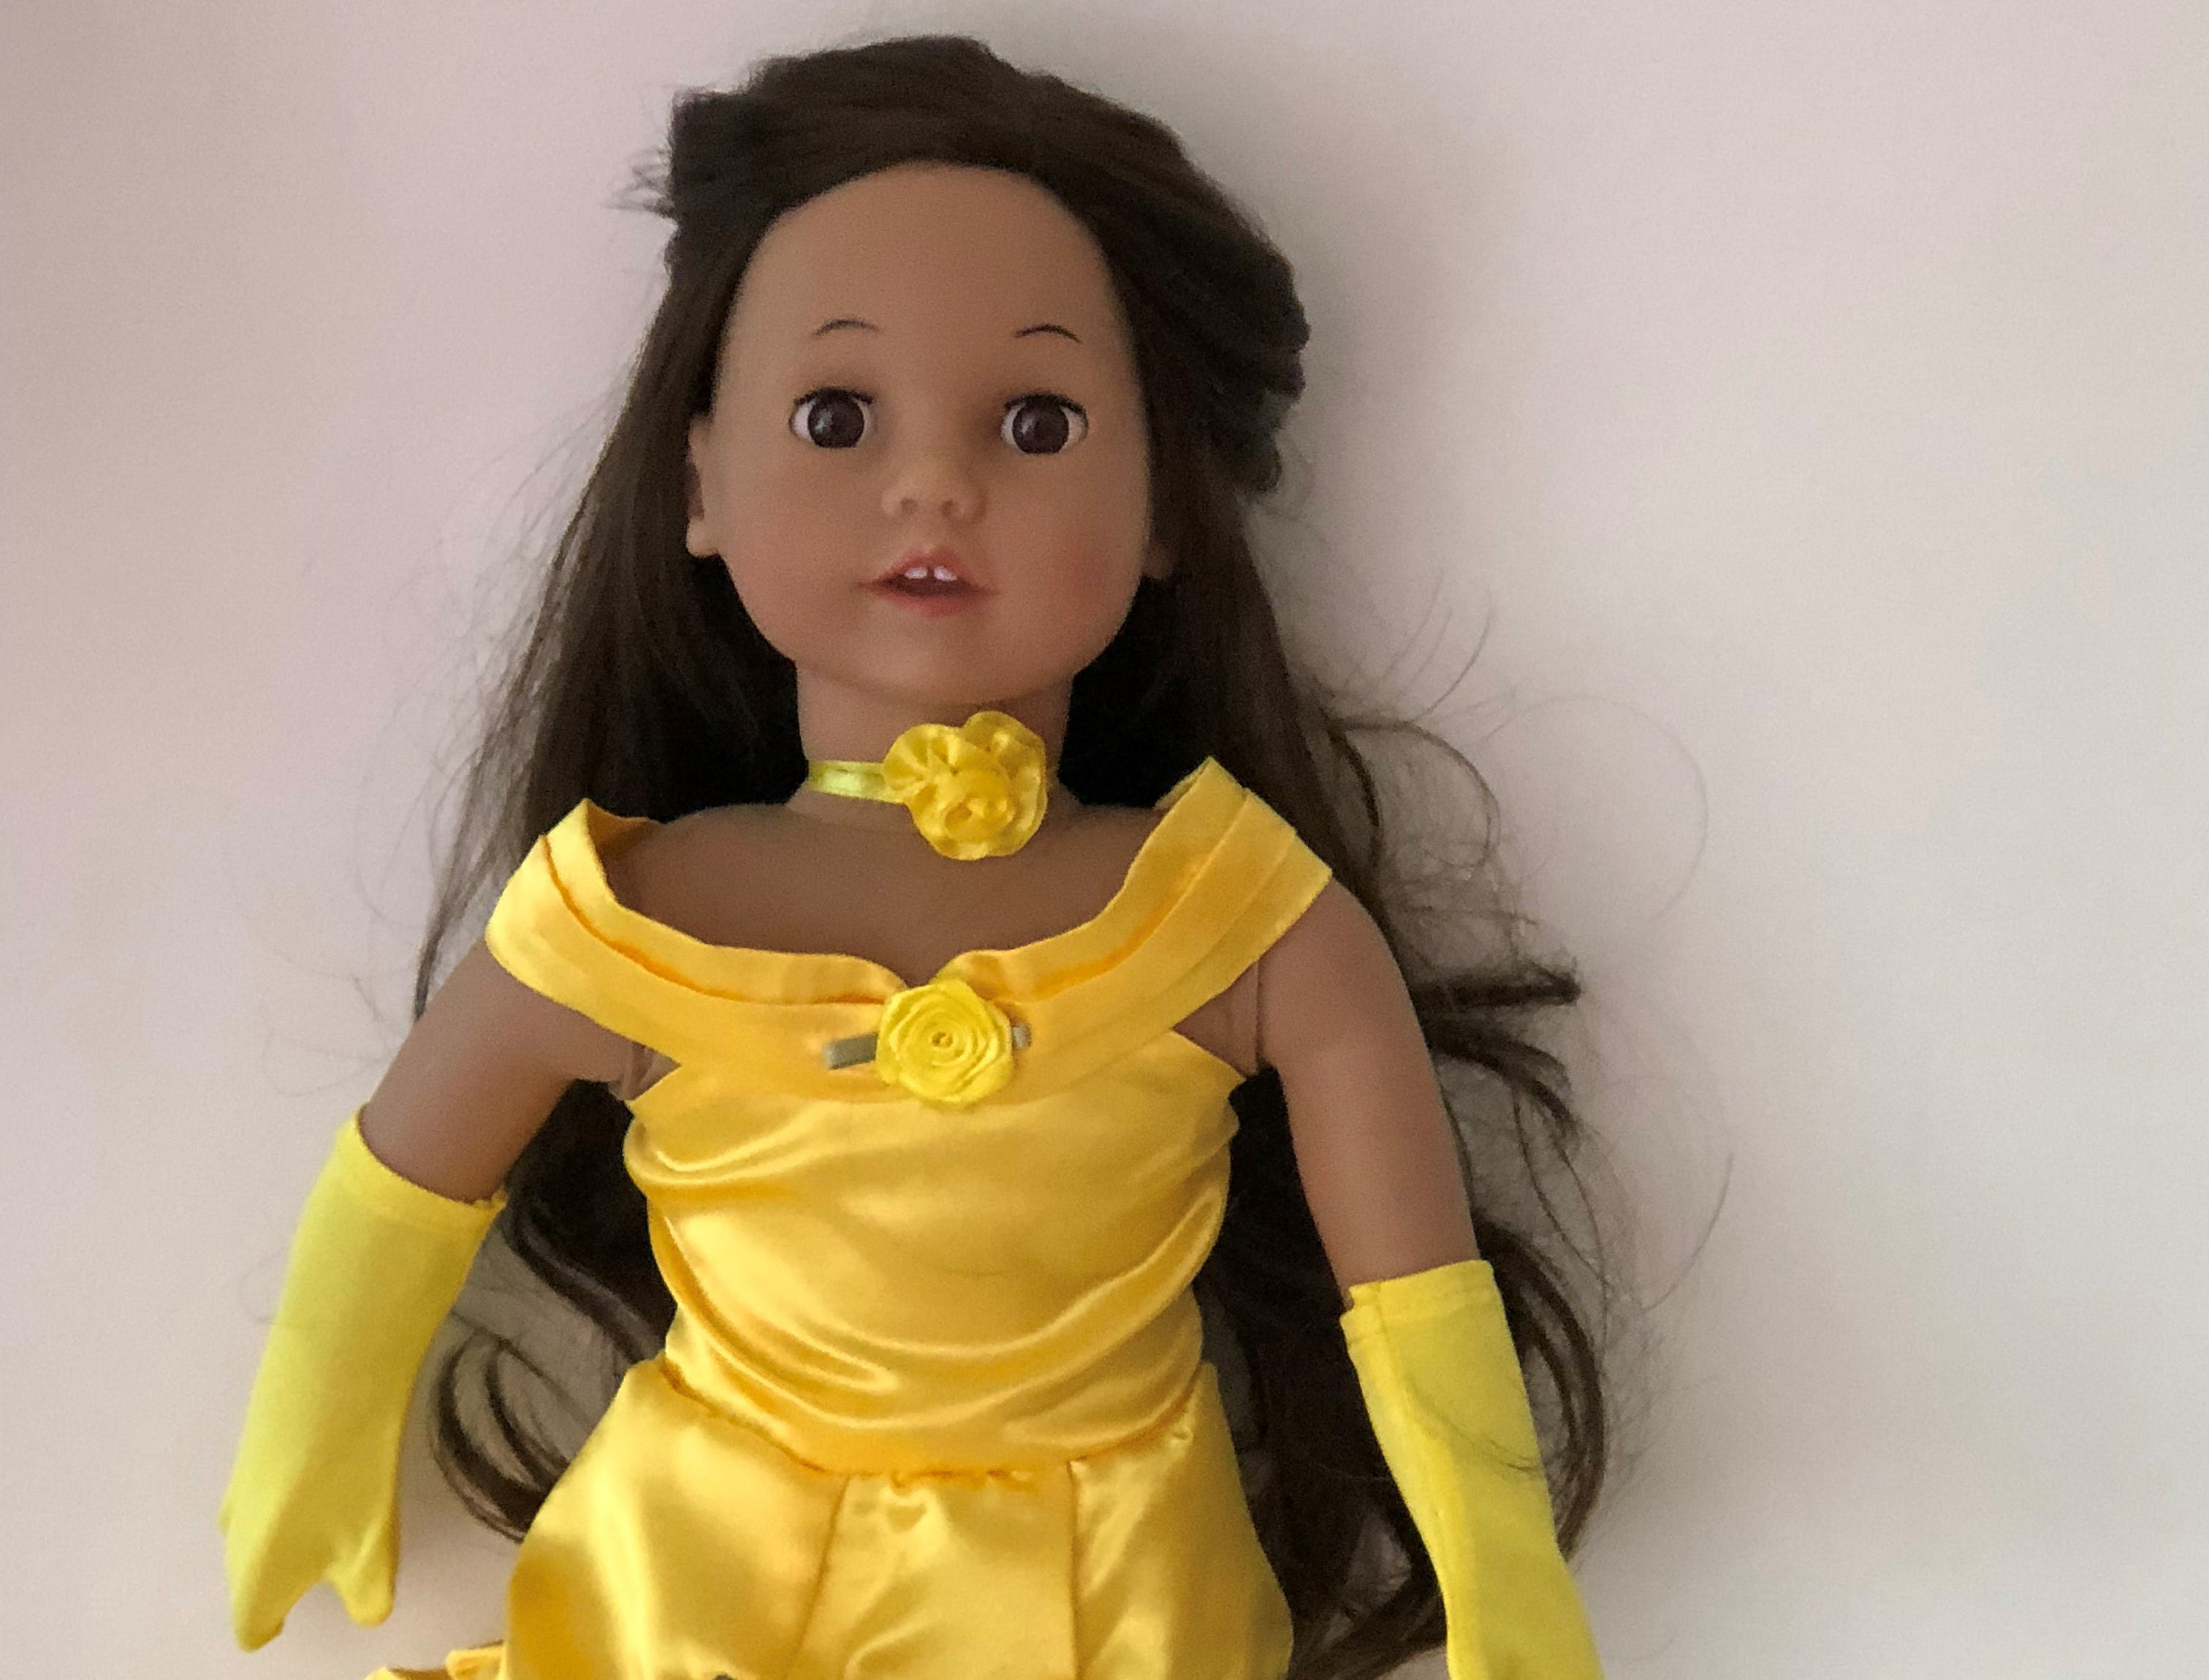 Stella & Toni, named for the owner's daughters, sells 18-inch dolls and hosts events centered around dolls and crafts.